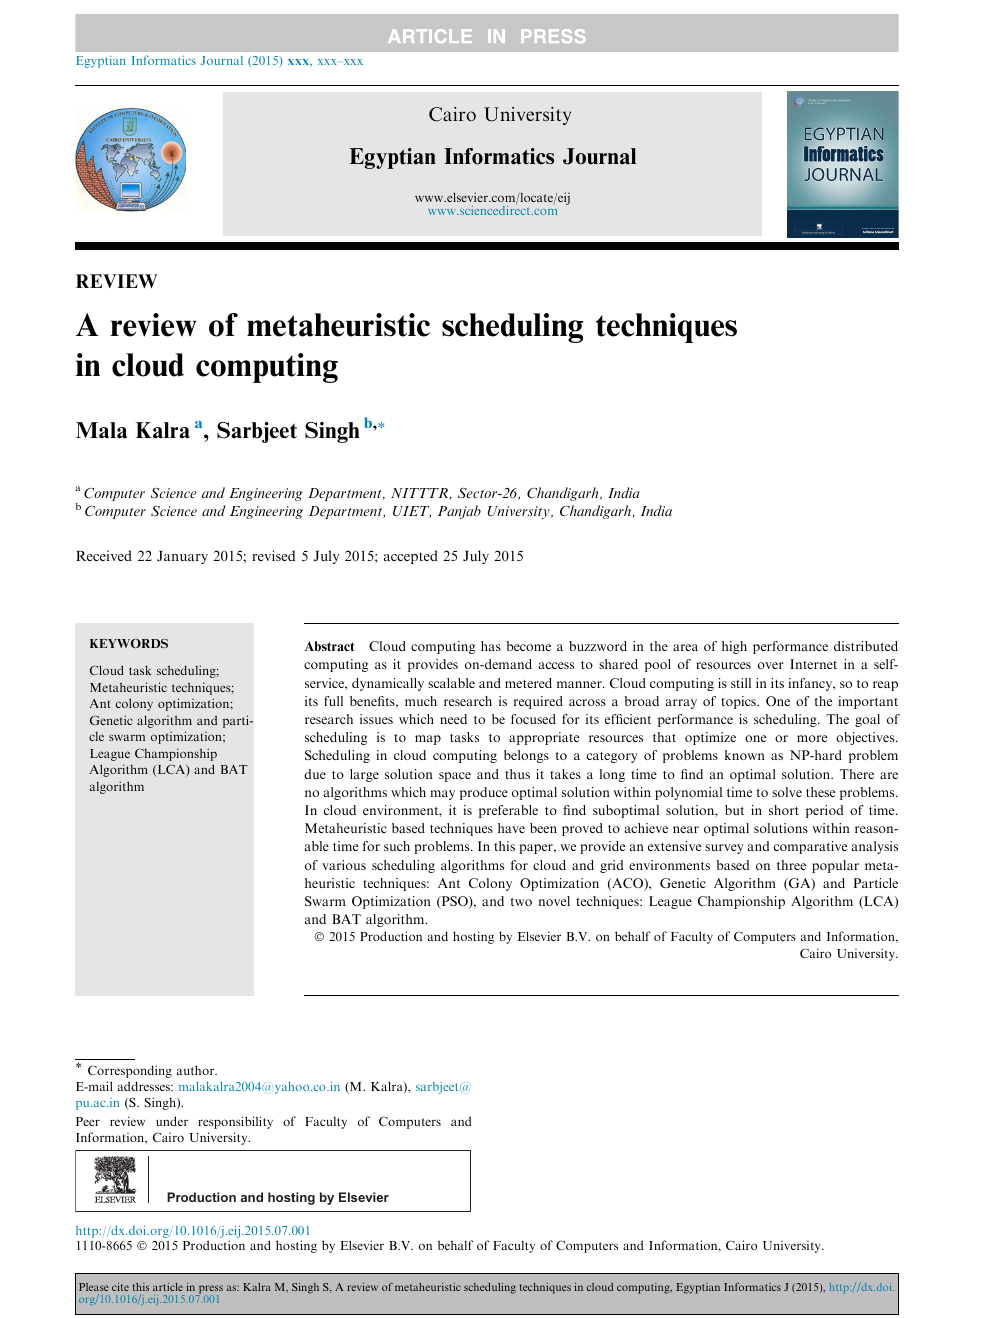 A review of metaheuristic scheduling techniques in cloud